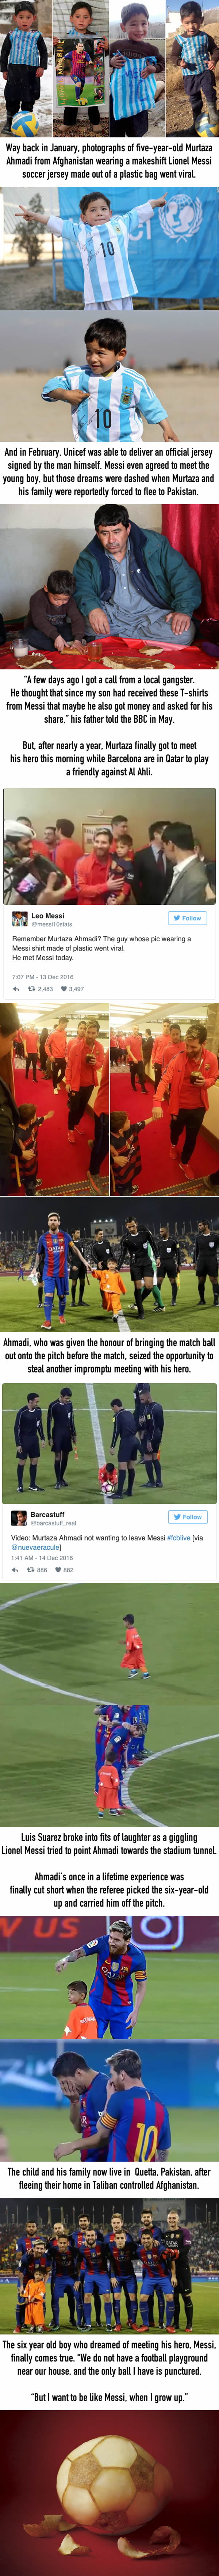 Afghan Boy With Homemade Messi Jersey Finally Gets To Meet His Hero